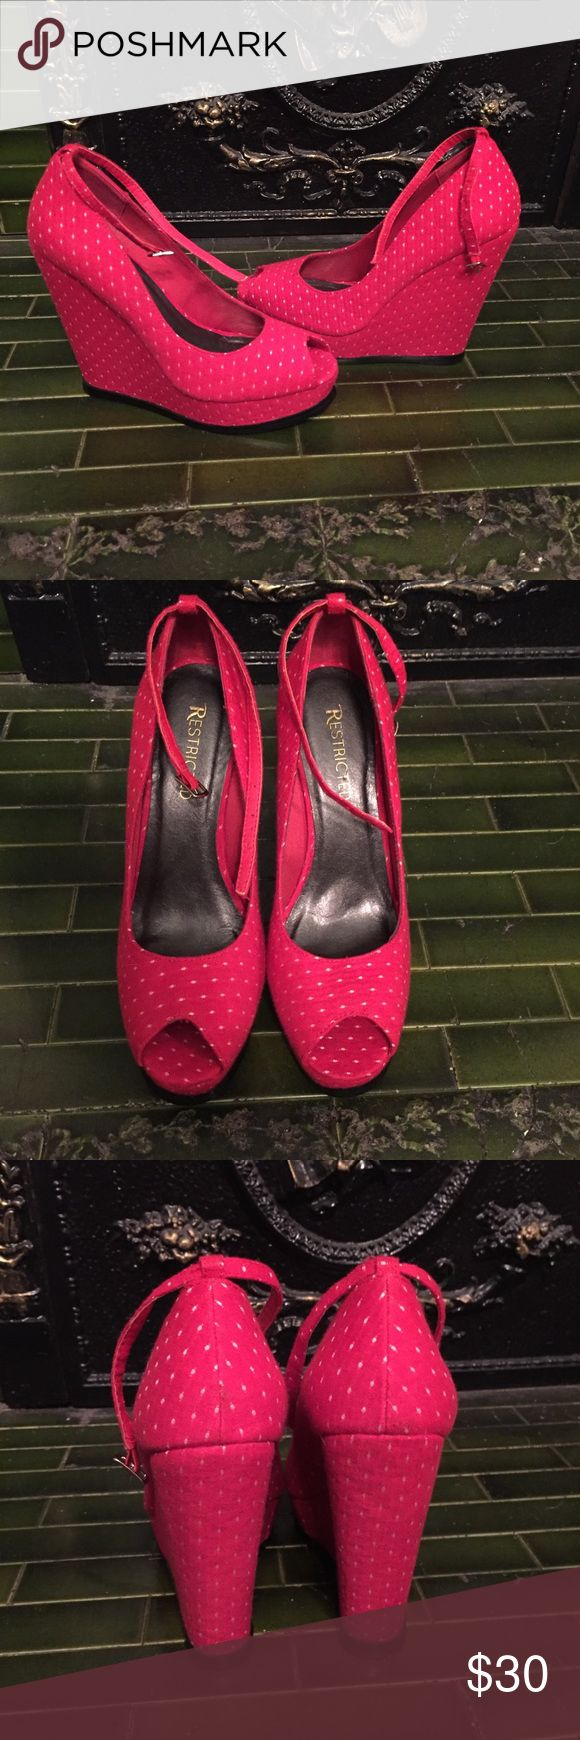 """Red peeptoe platform wedge size 8.5 These are red with white dots and a cute ankle strap. They were only worn once so they're in near perfect condition. The front platform is 1"""" and the back is 5.25"""" tall. Feel free to ask any questions! Restricted Shoes Wedges"""